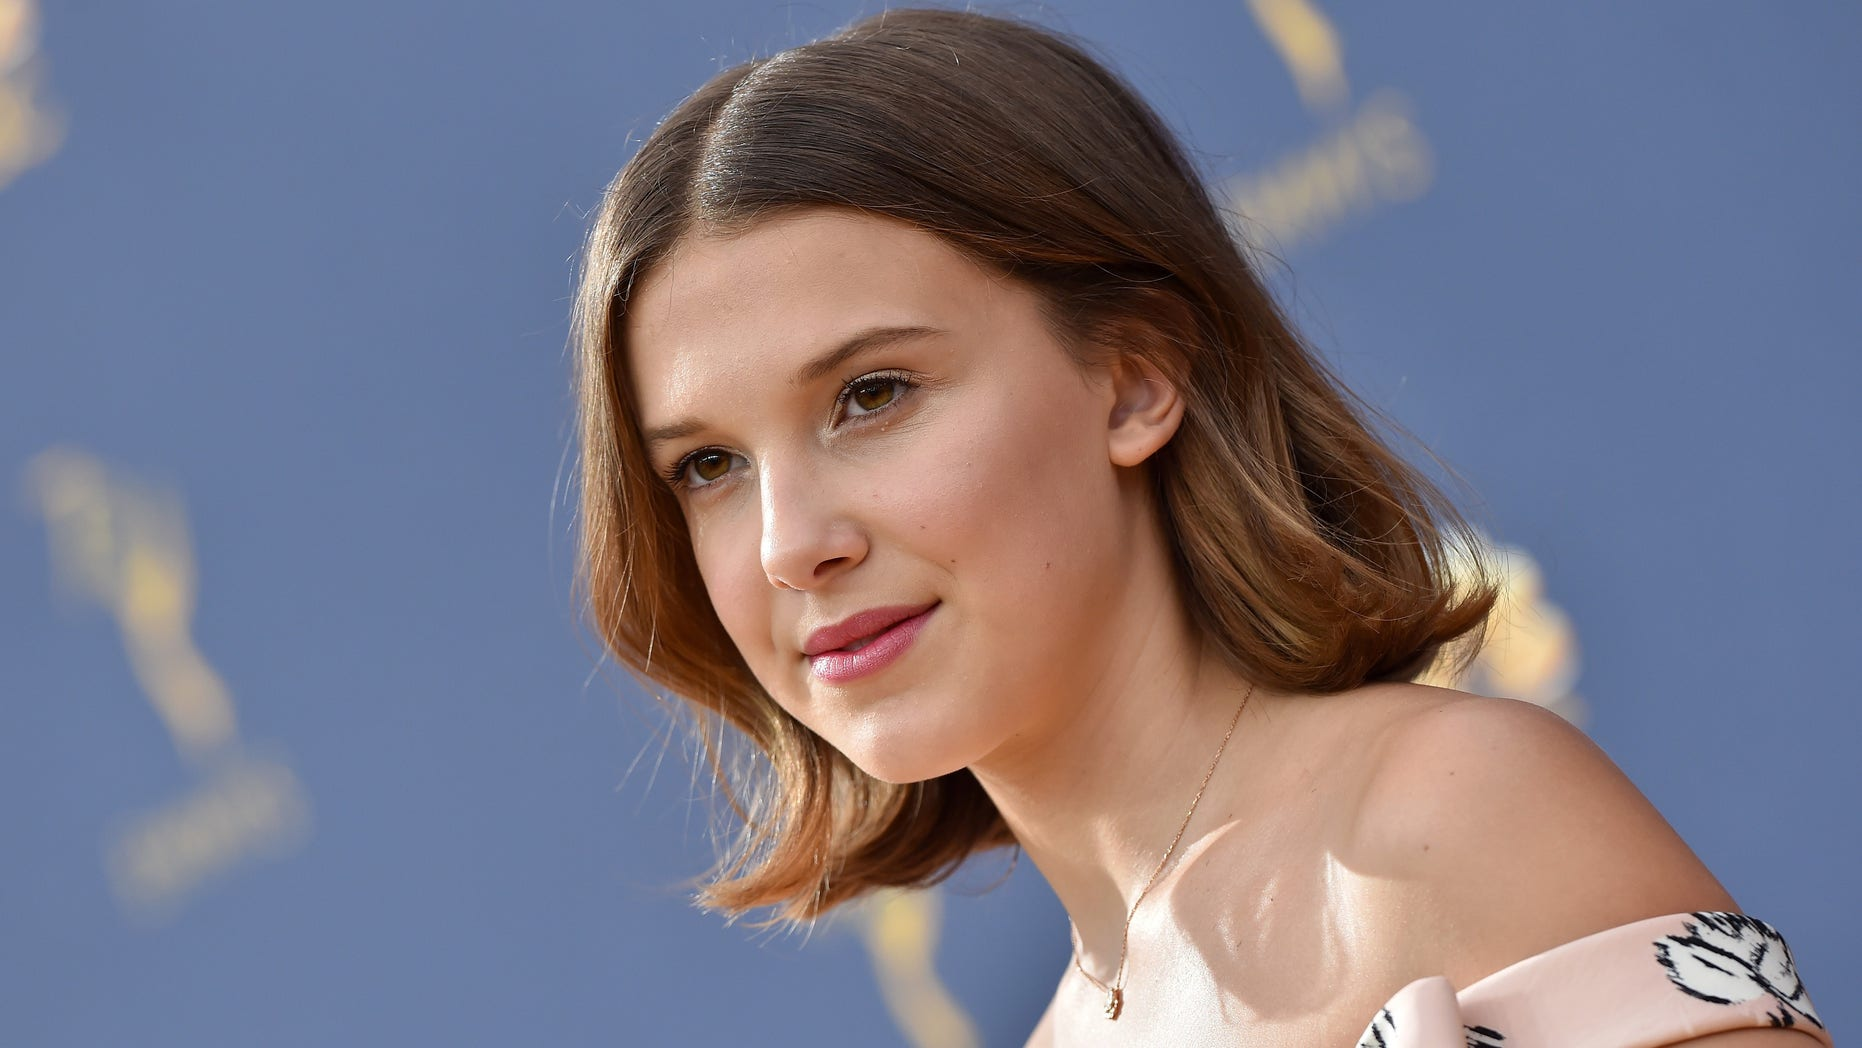 Millie Bobby Brown strike behind during people who pronounced she should act your age after she posted a print of herself wearing a midi dress.